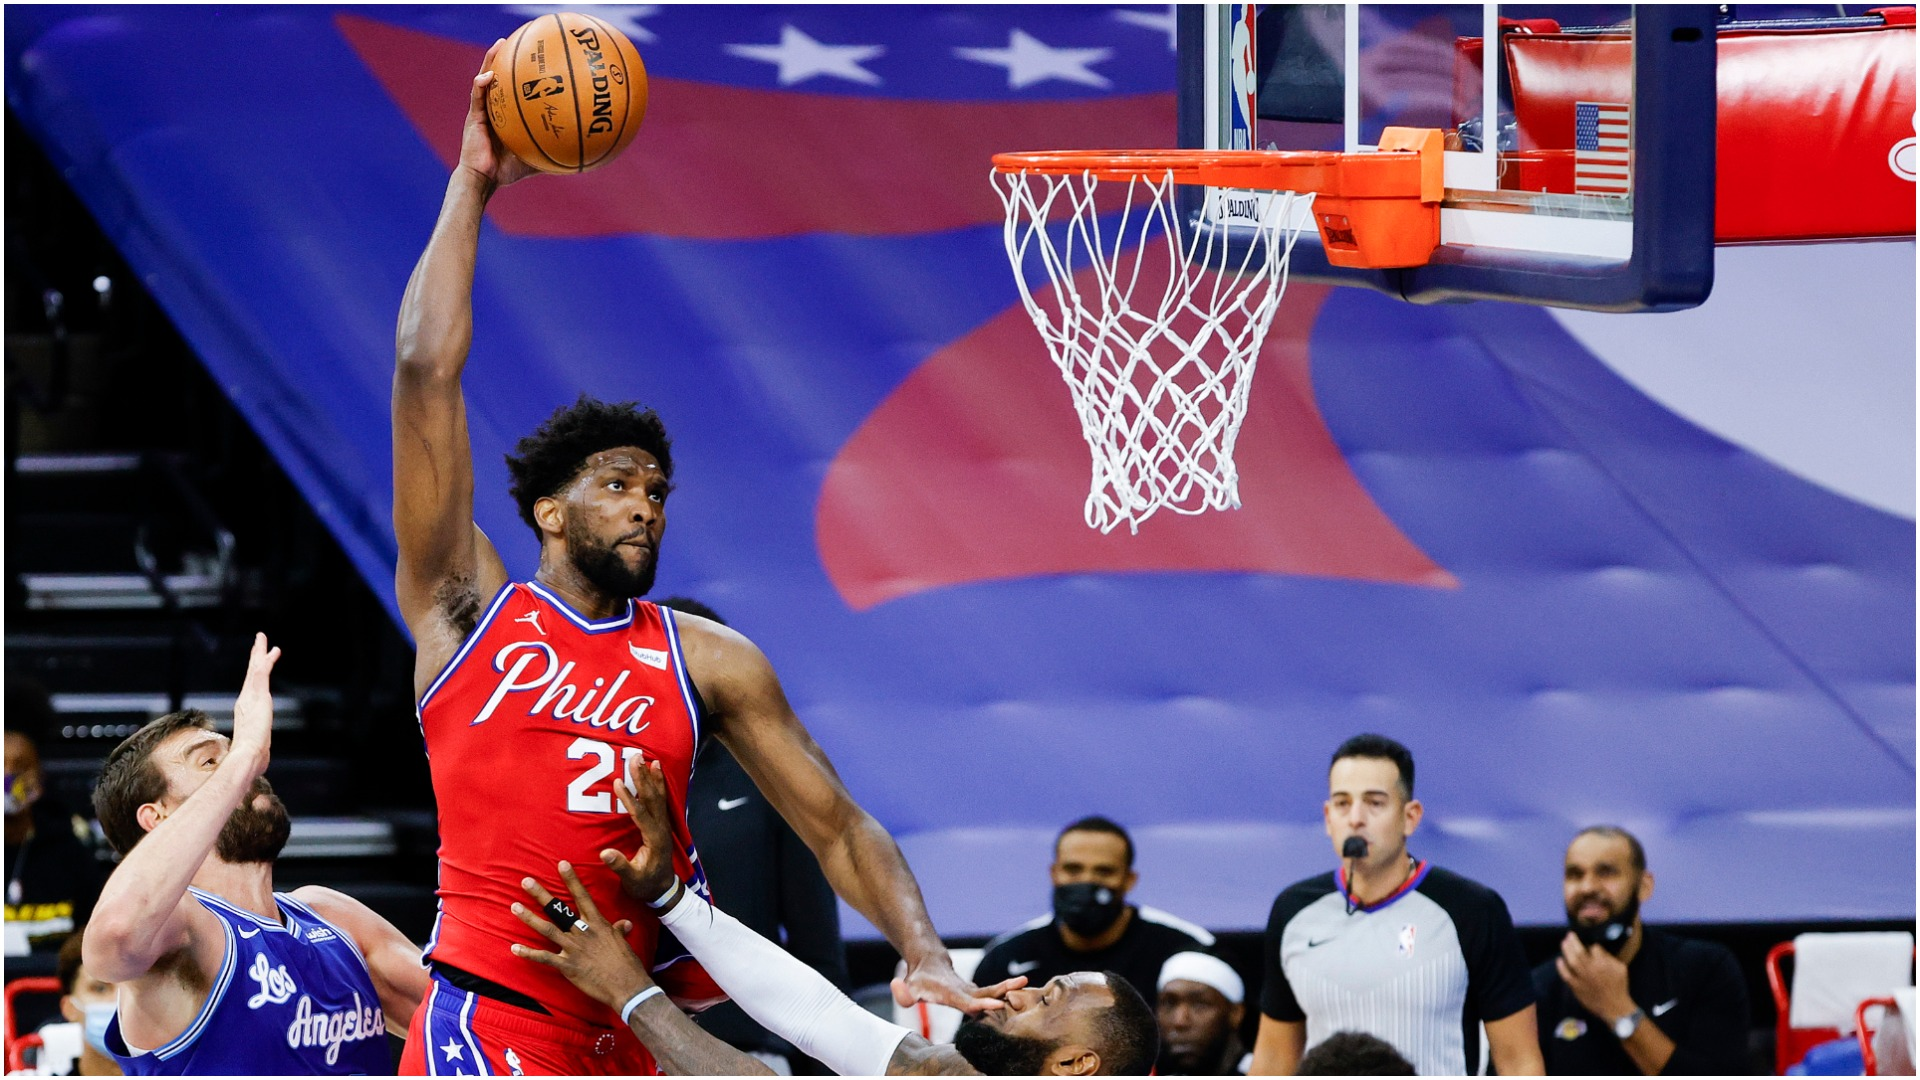 Embiid wanted LeBron ejected as 76ers edge out Lakers